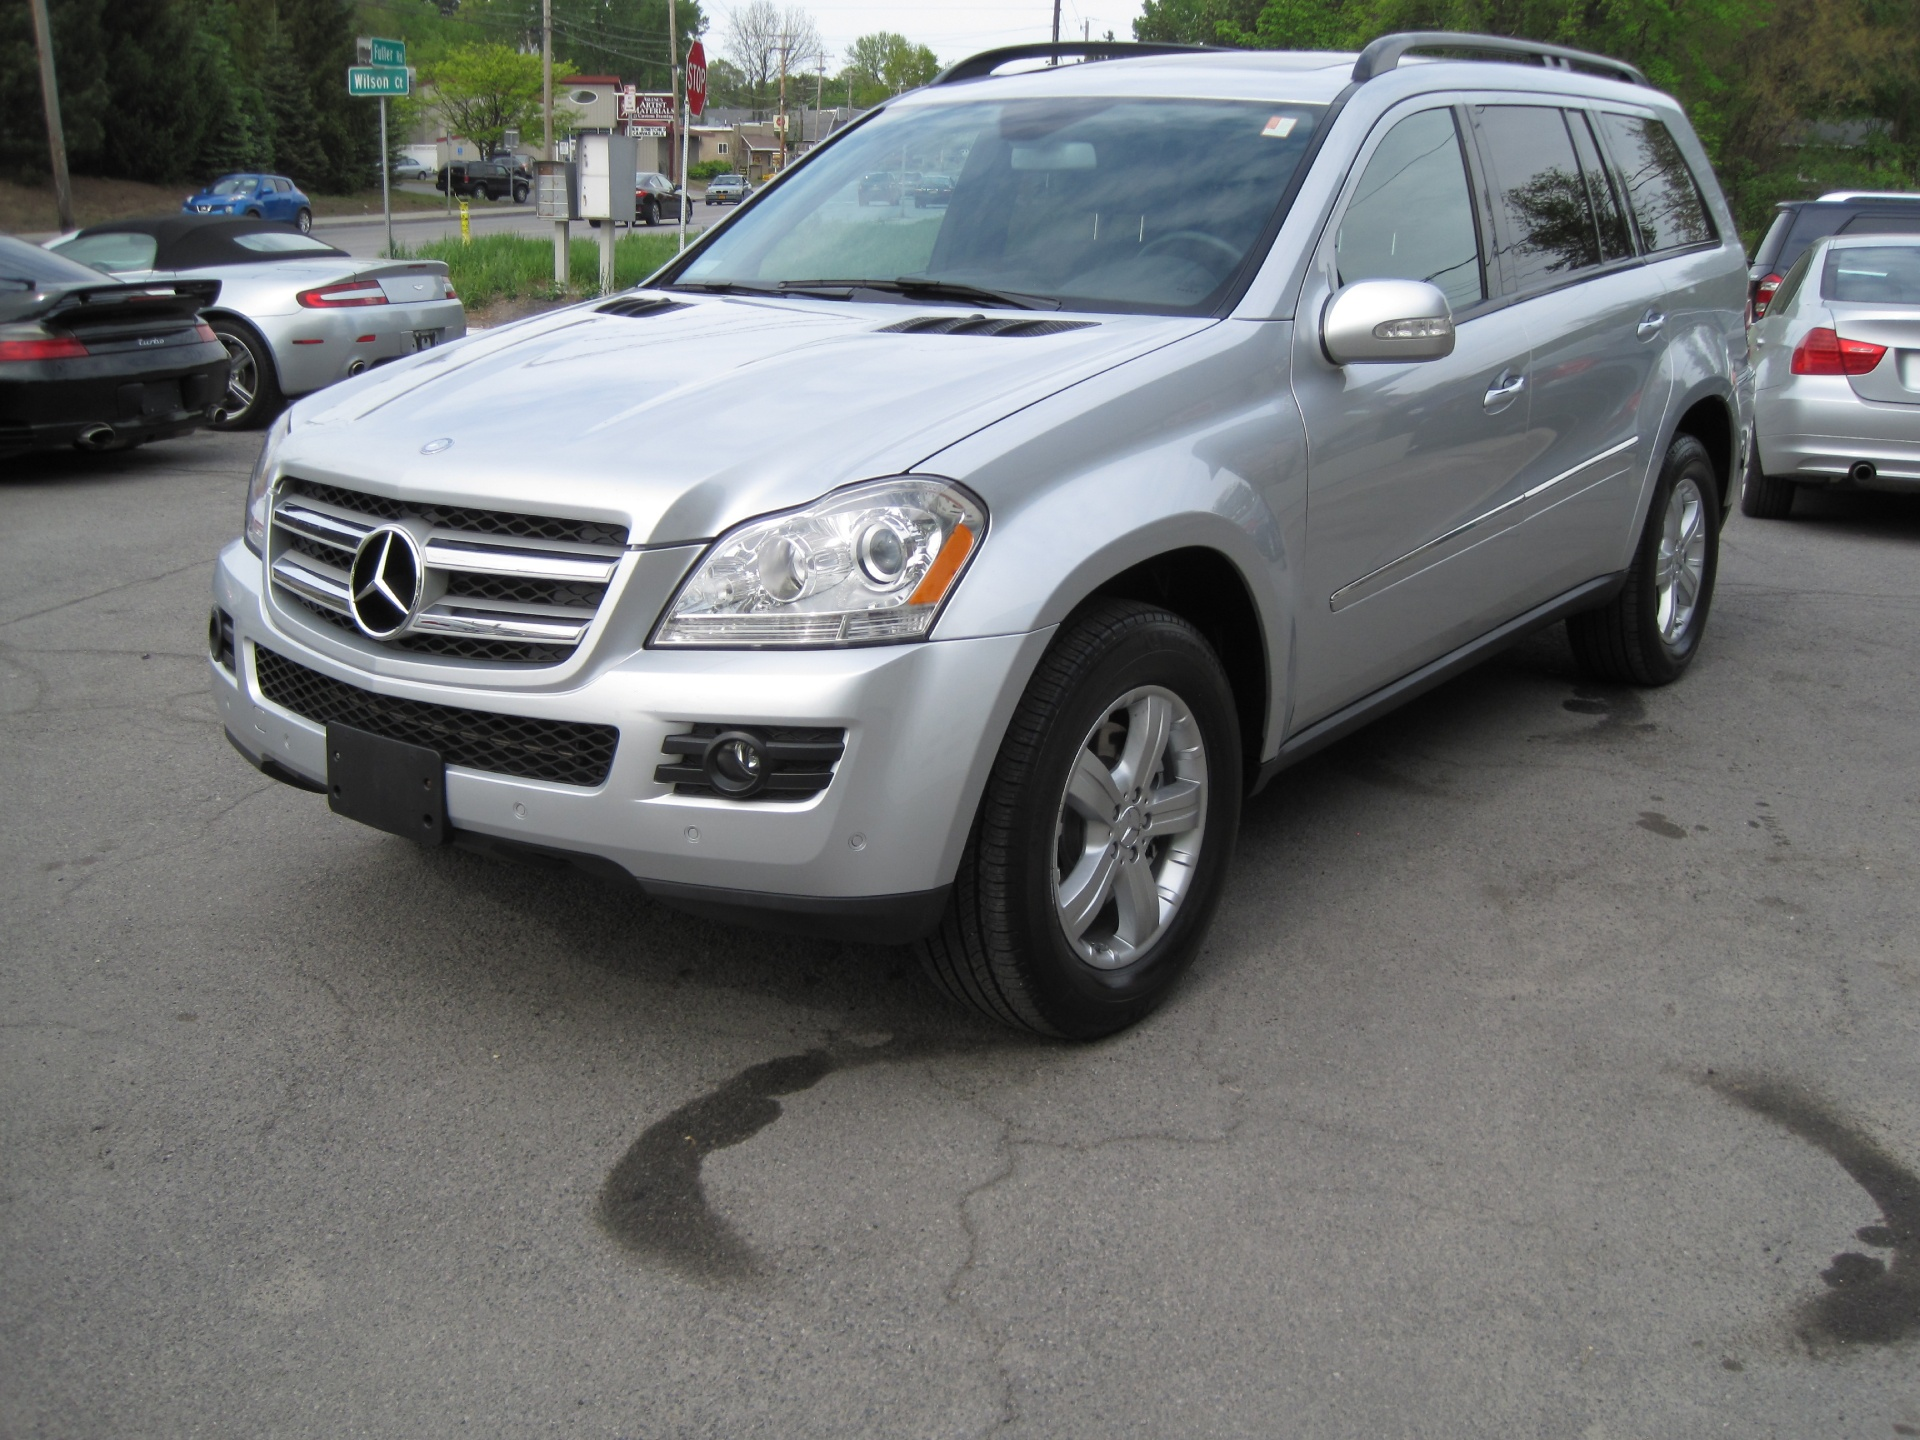 2007 mercedes benz gl class gl450 4matic awd one owner for 2007 mercedes benz gl class gl450 price